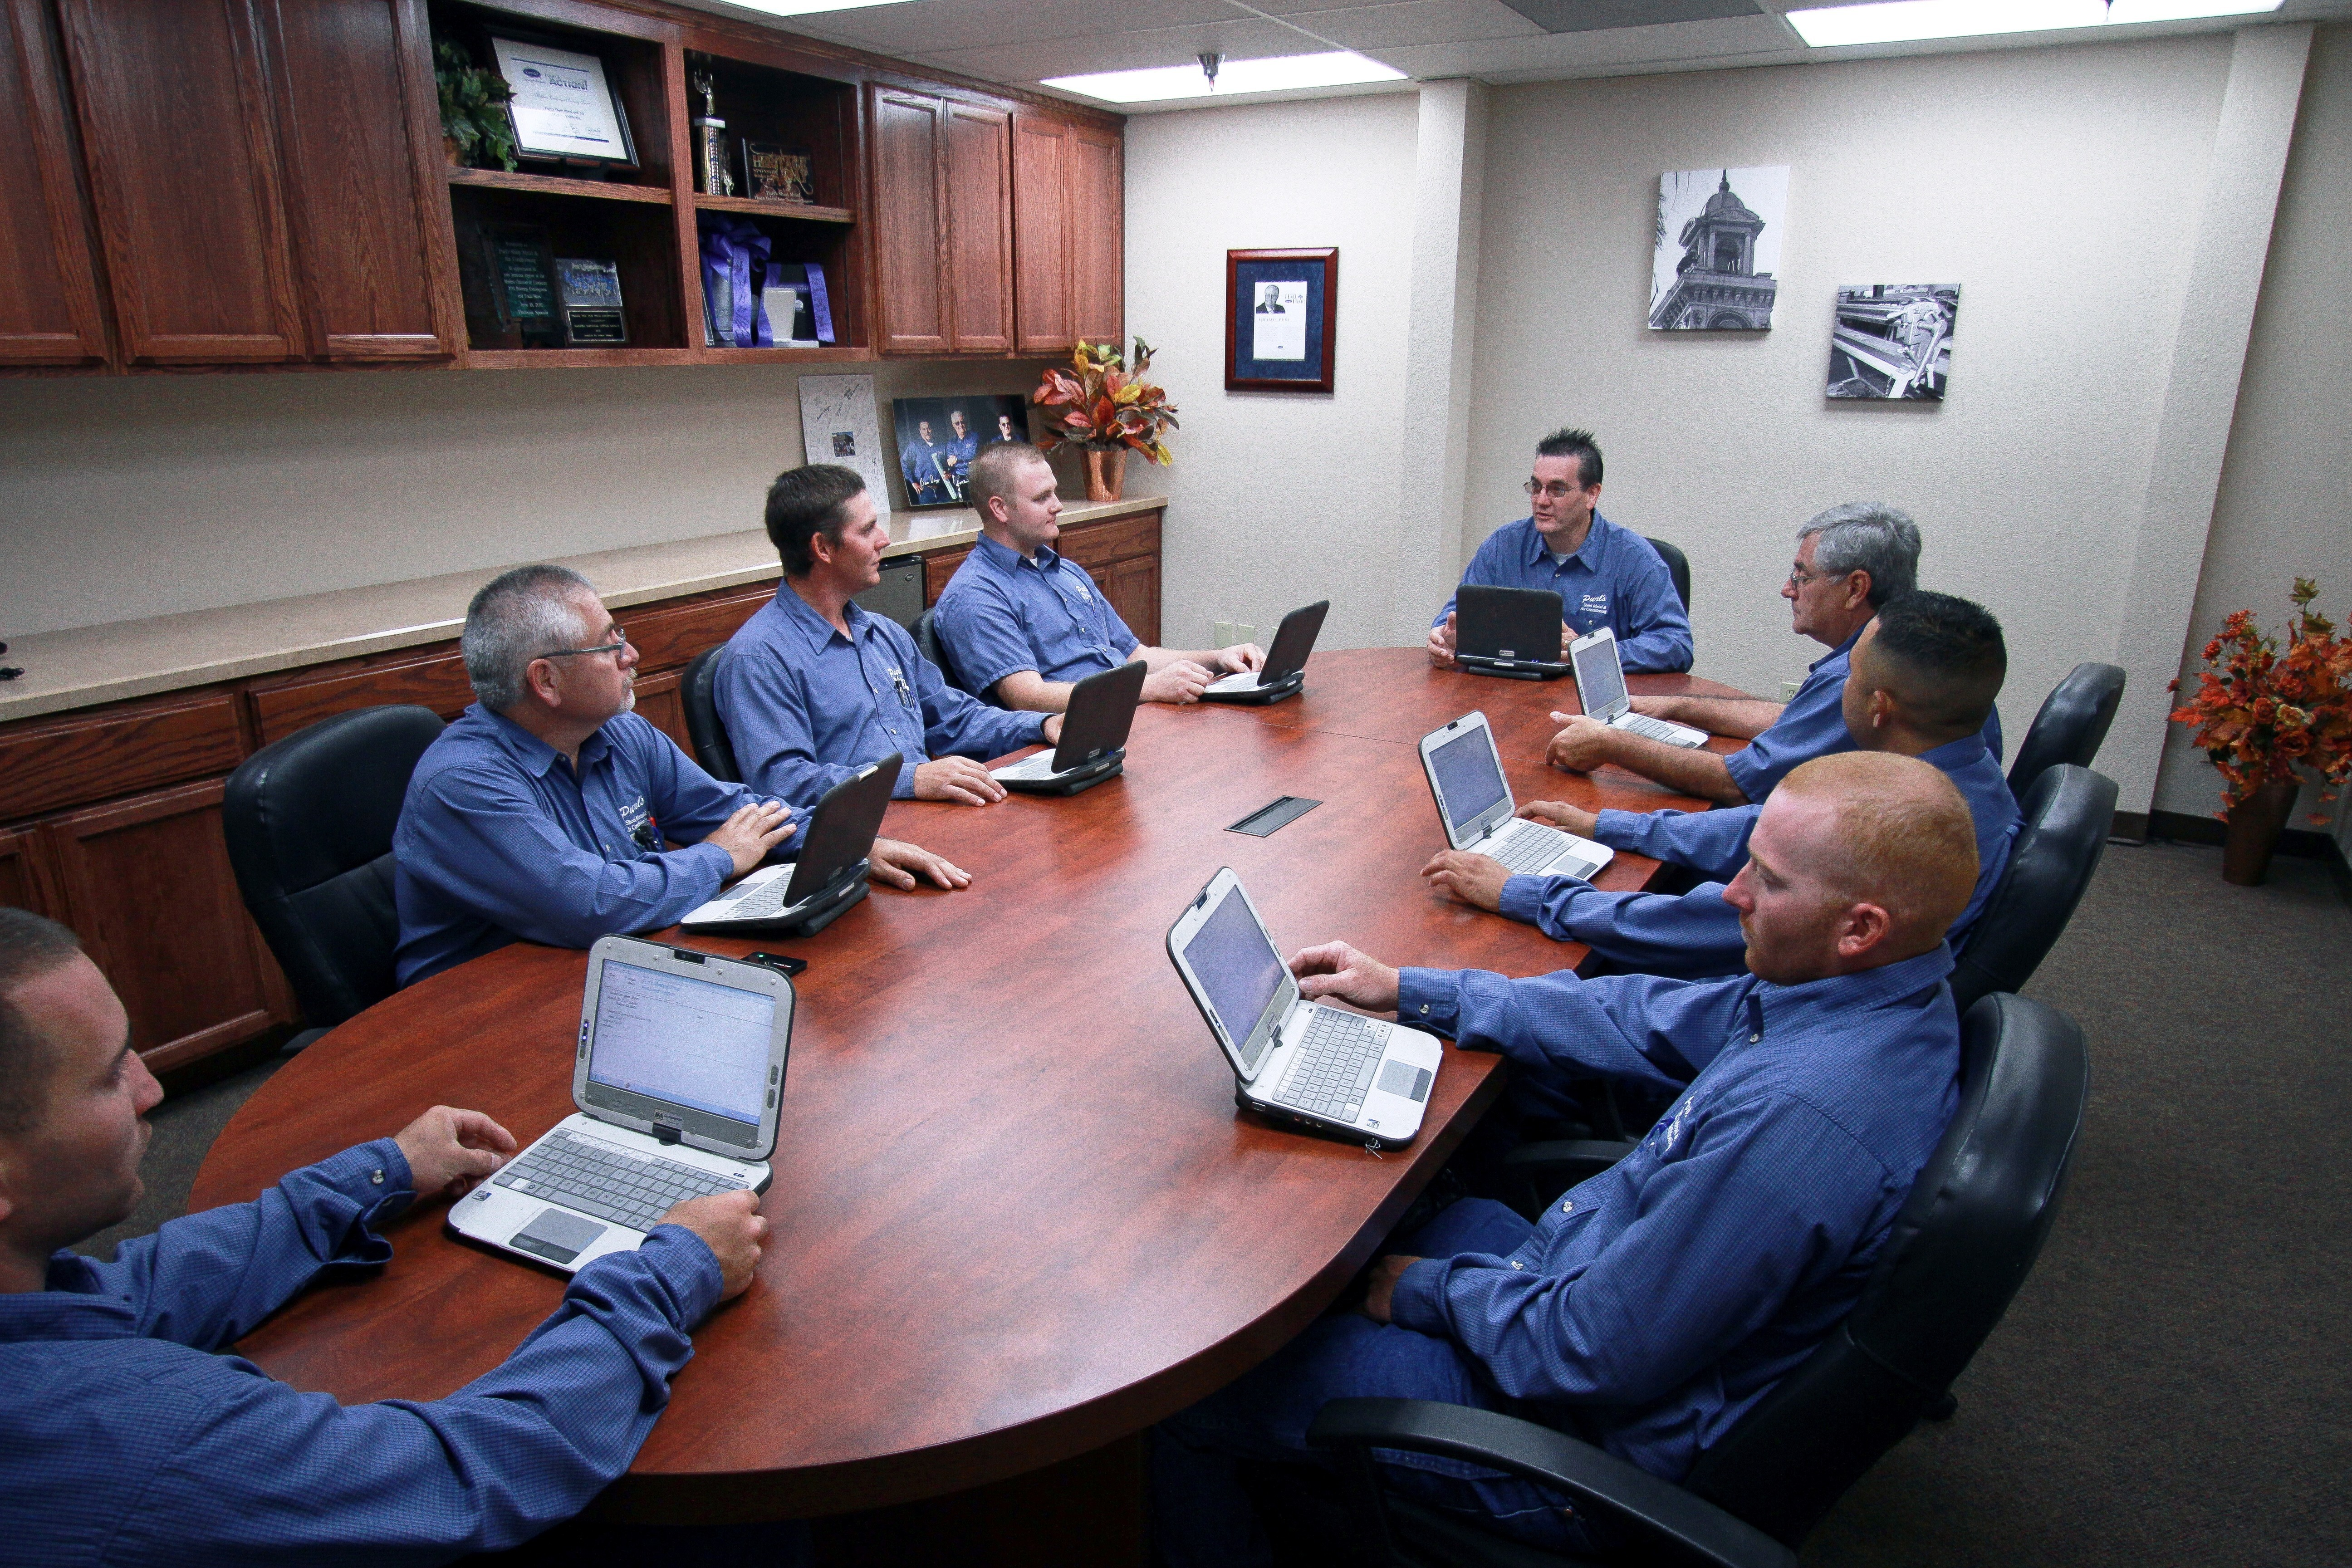 Service Technician Meeting with Computer Tablets